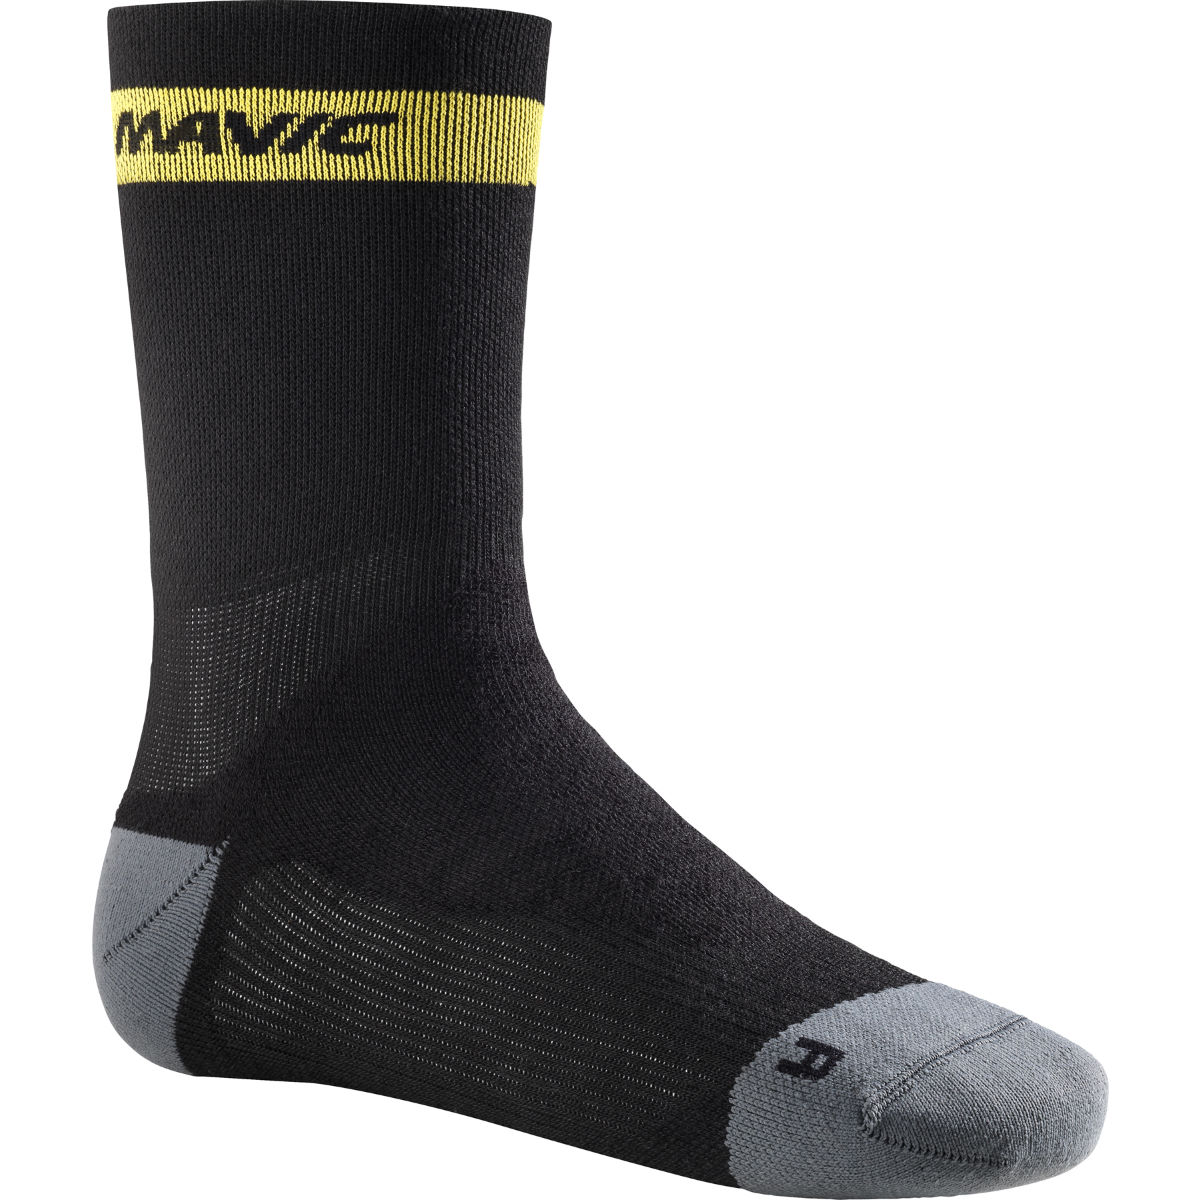 Chaussettes Mavic Ksyrium Elite Thermo - 35-38 Black/Dark Cloud